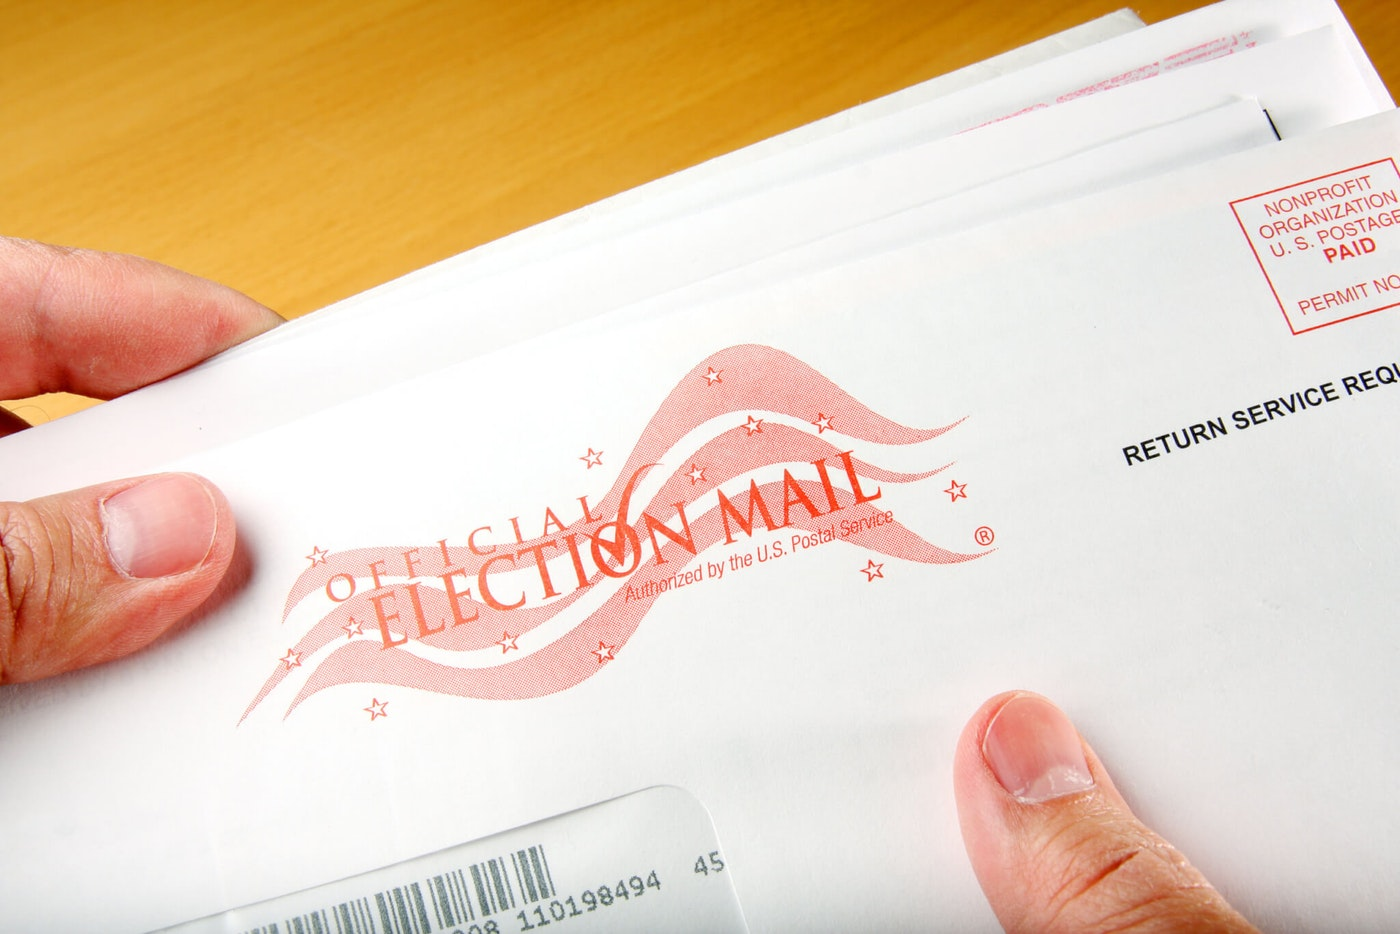 In a leap forward for voter access, Oakland County is the first county in the state that will pay for postage on all ballots returned by mail. (Photo via Shutterstock)